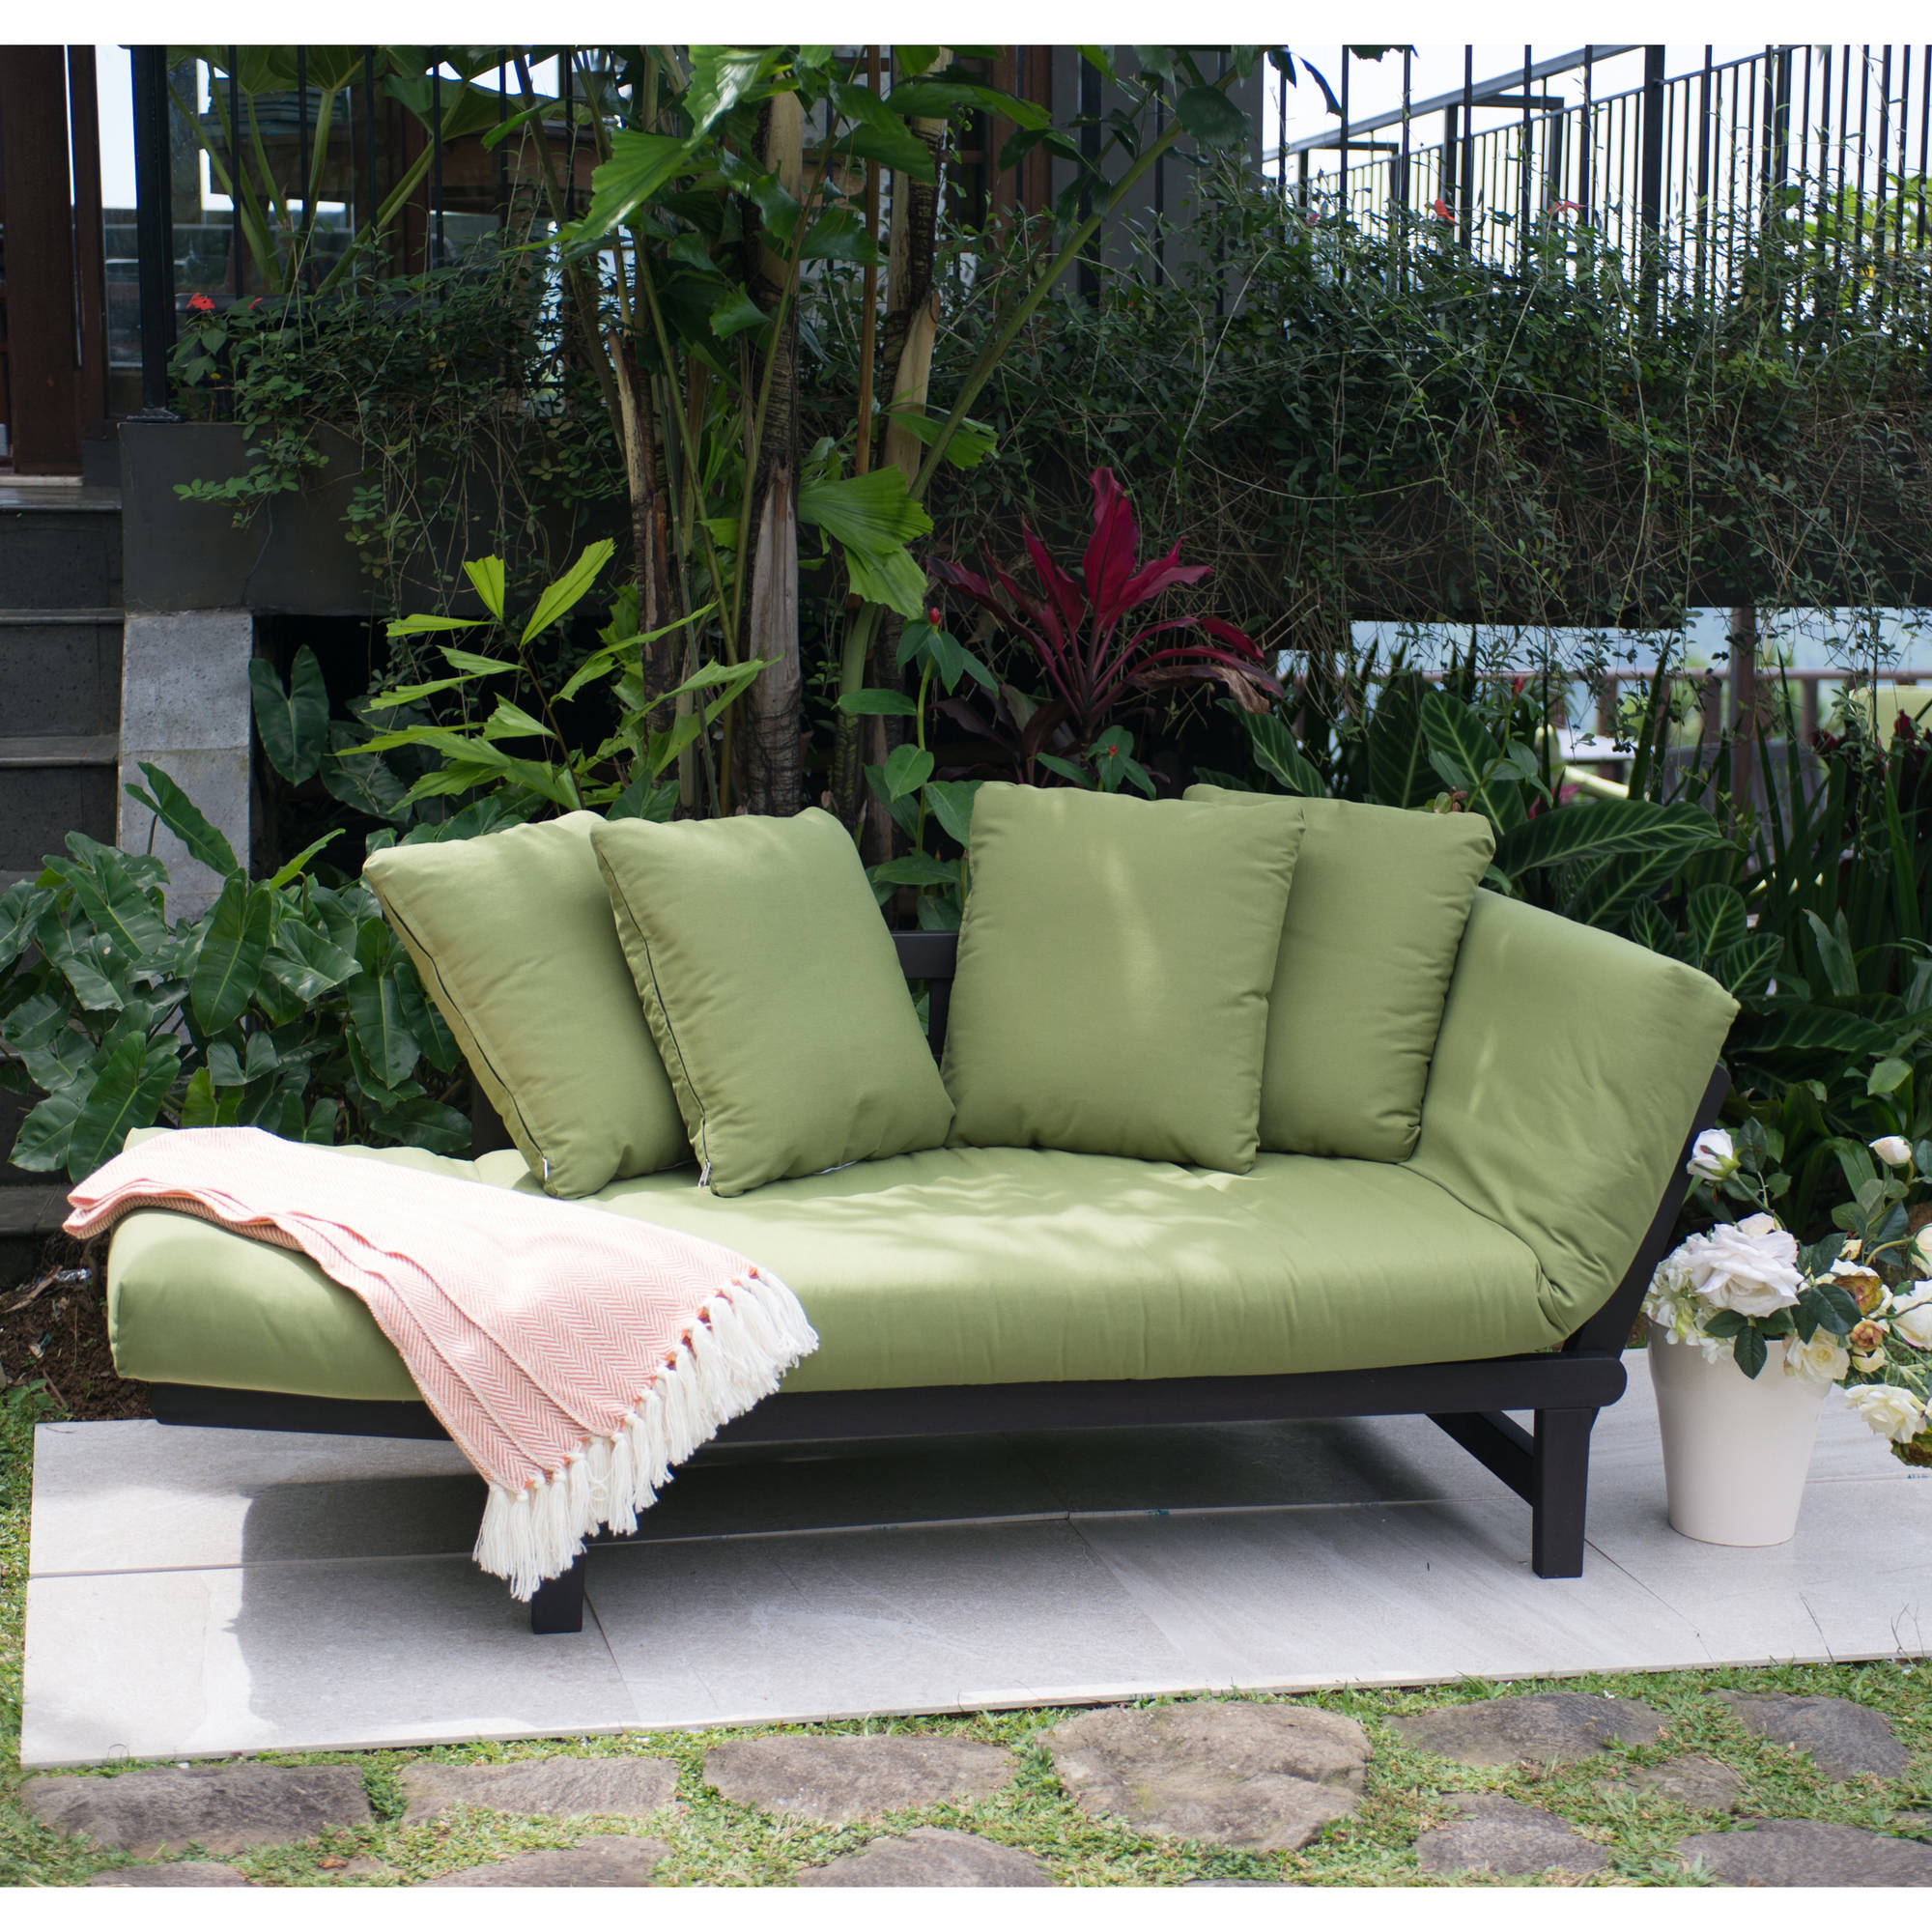 Furniture: Cool Patio Daybed With Alluring Cushions For Regarding Best And Newest Ellanti Patio Daybeds With Cushions (View 4 of 25)